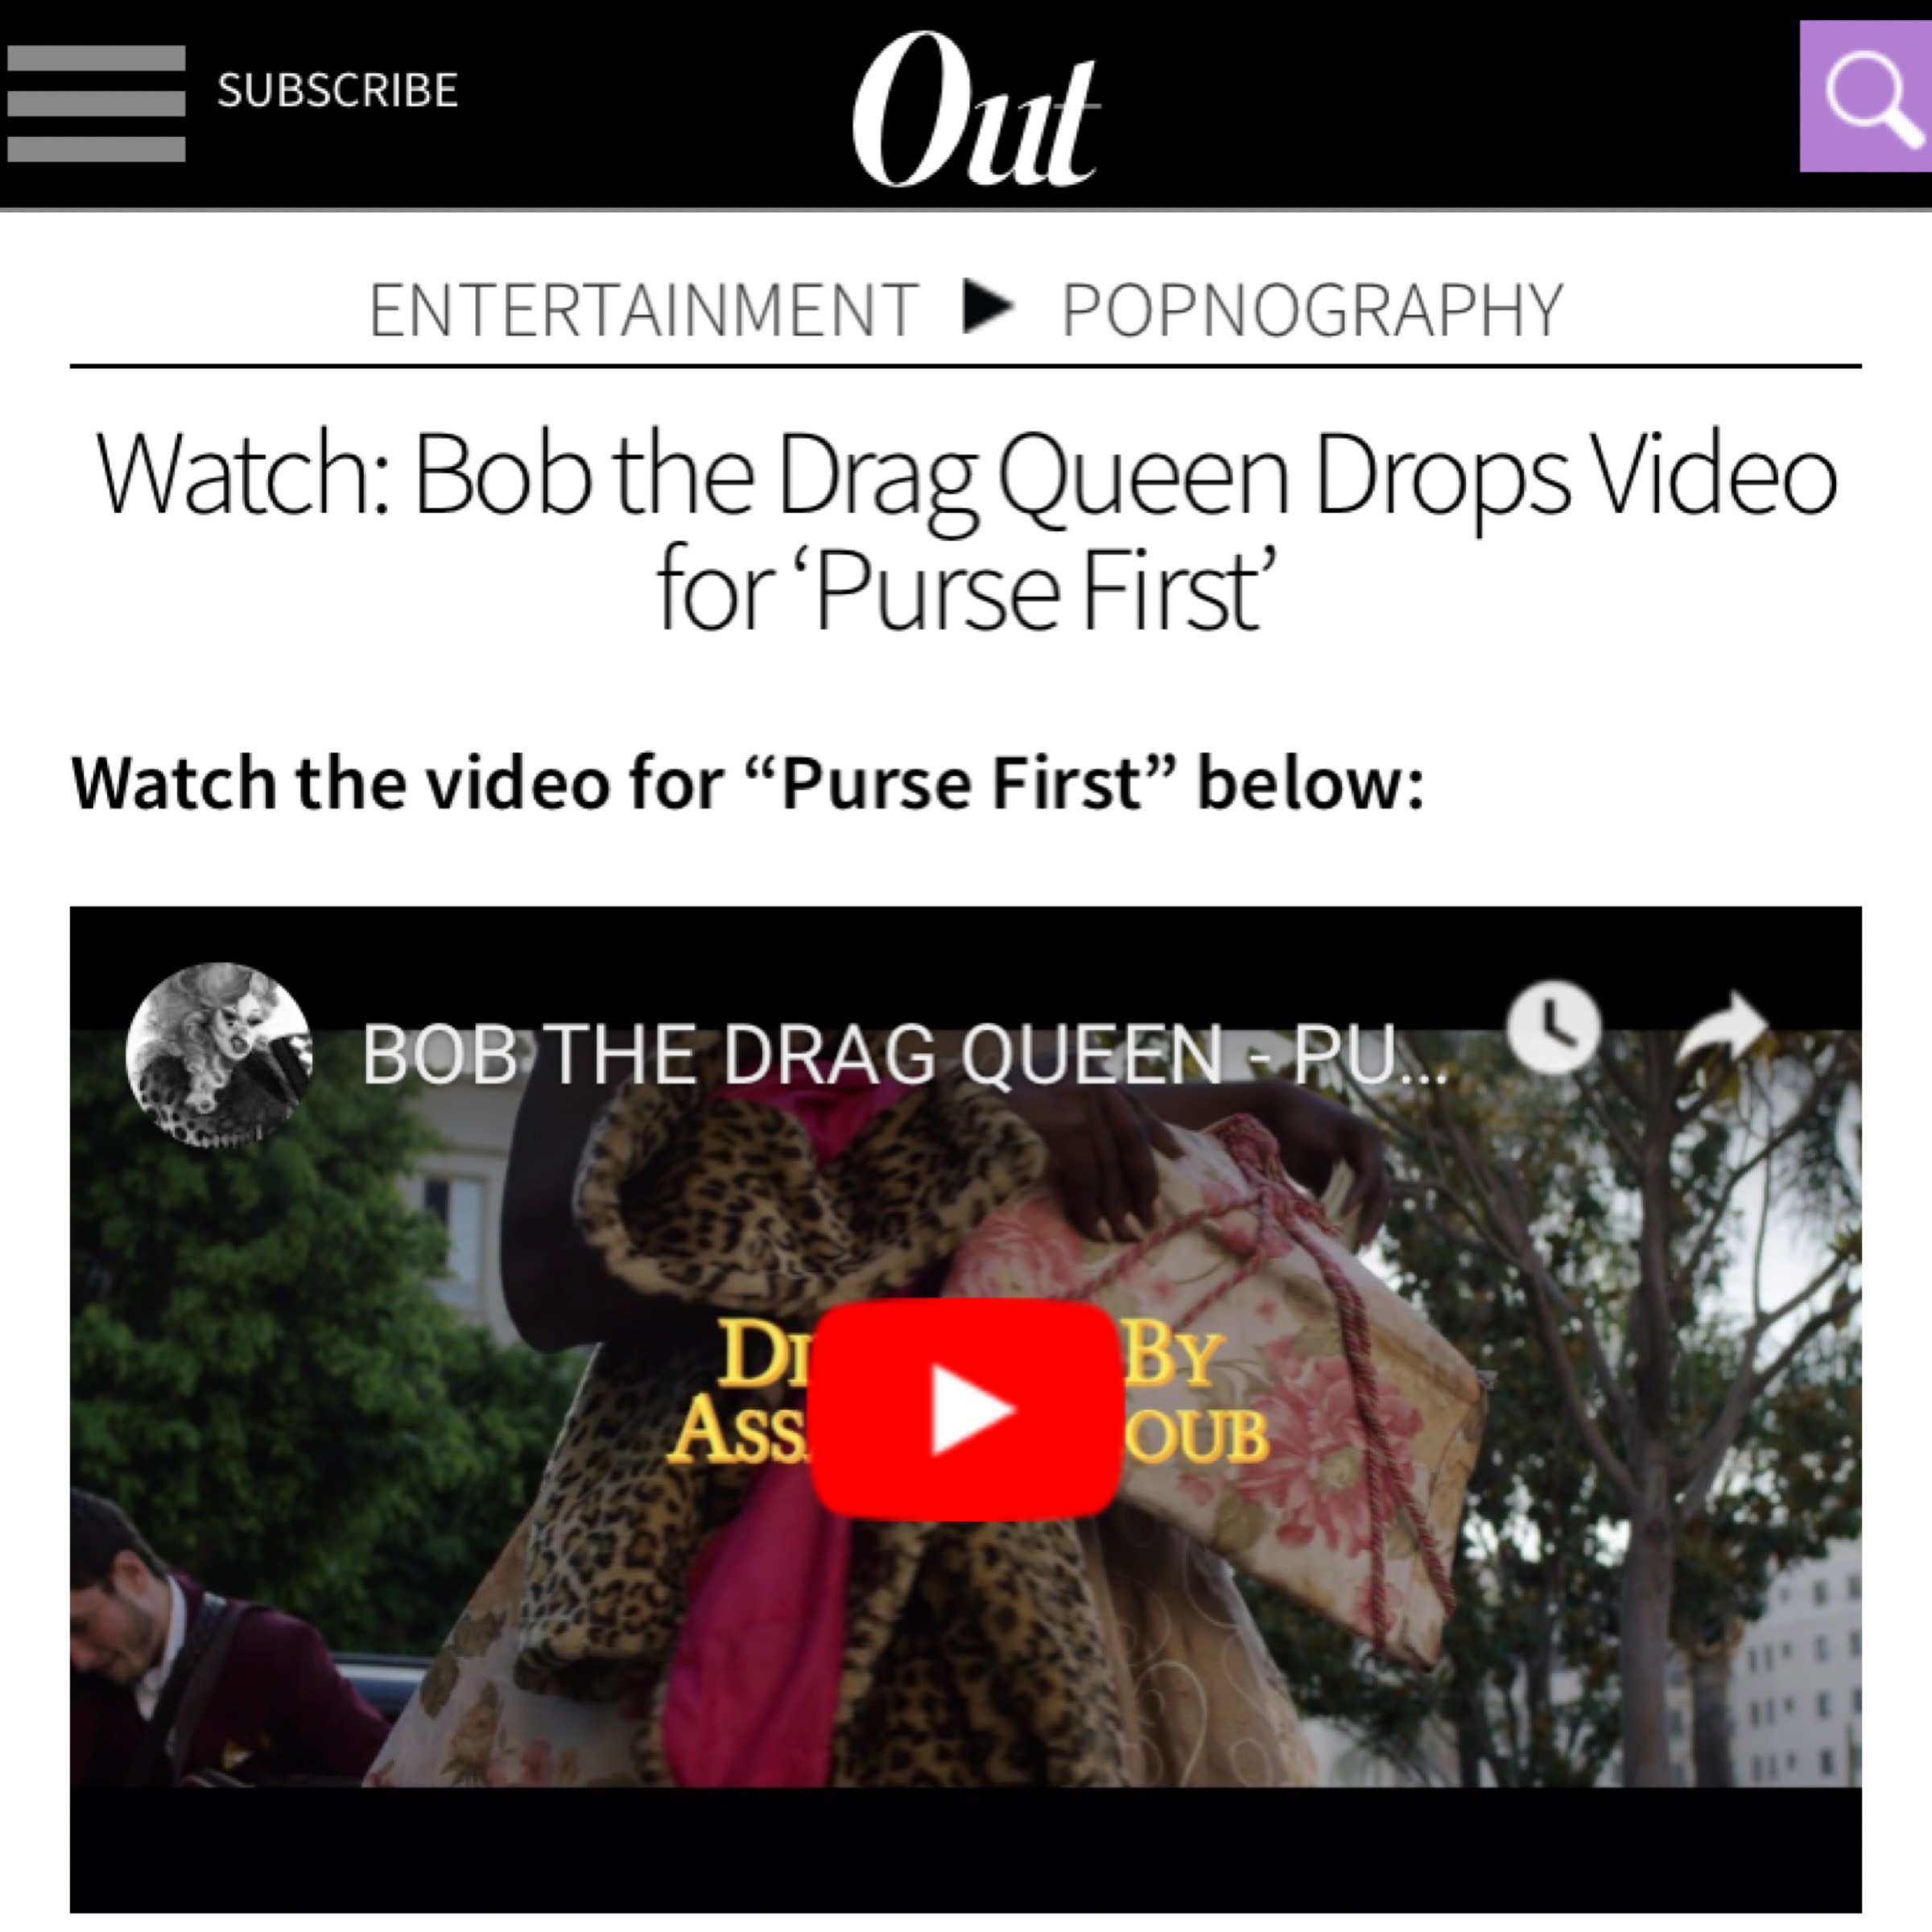 OUT MAGAZINE - BOB THE DRAG QUEEN (PURSE FIRST)